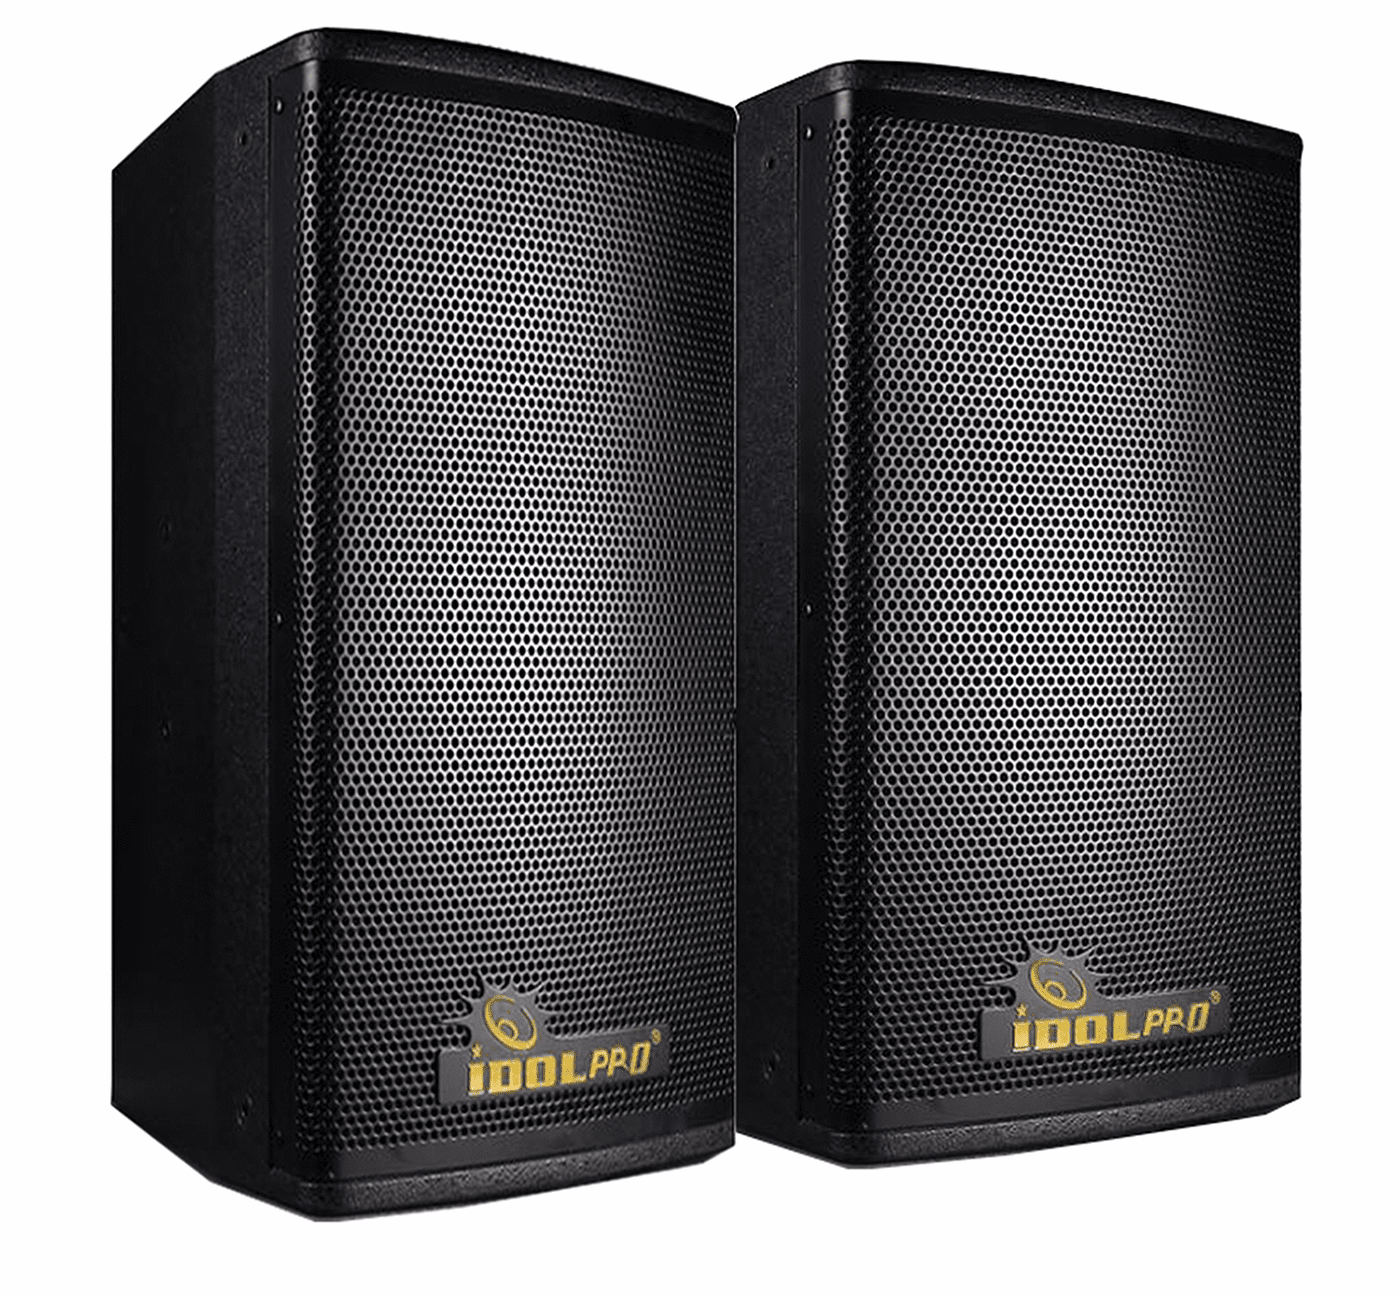 "IDOLpro IPS-2000 1500W High-Output Sharp & Powerful Sound Full Range Professional Karaoke Speakers  <font color="" orange"">Discontinued </font>"